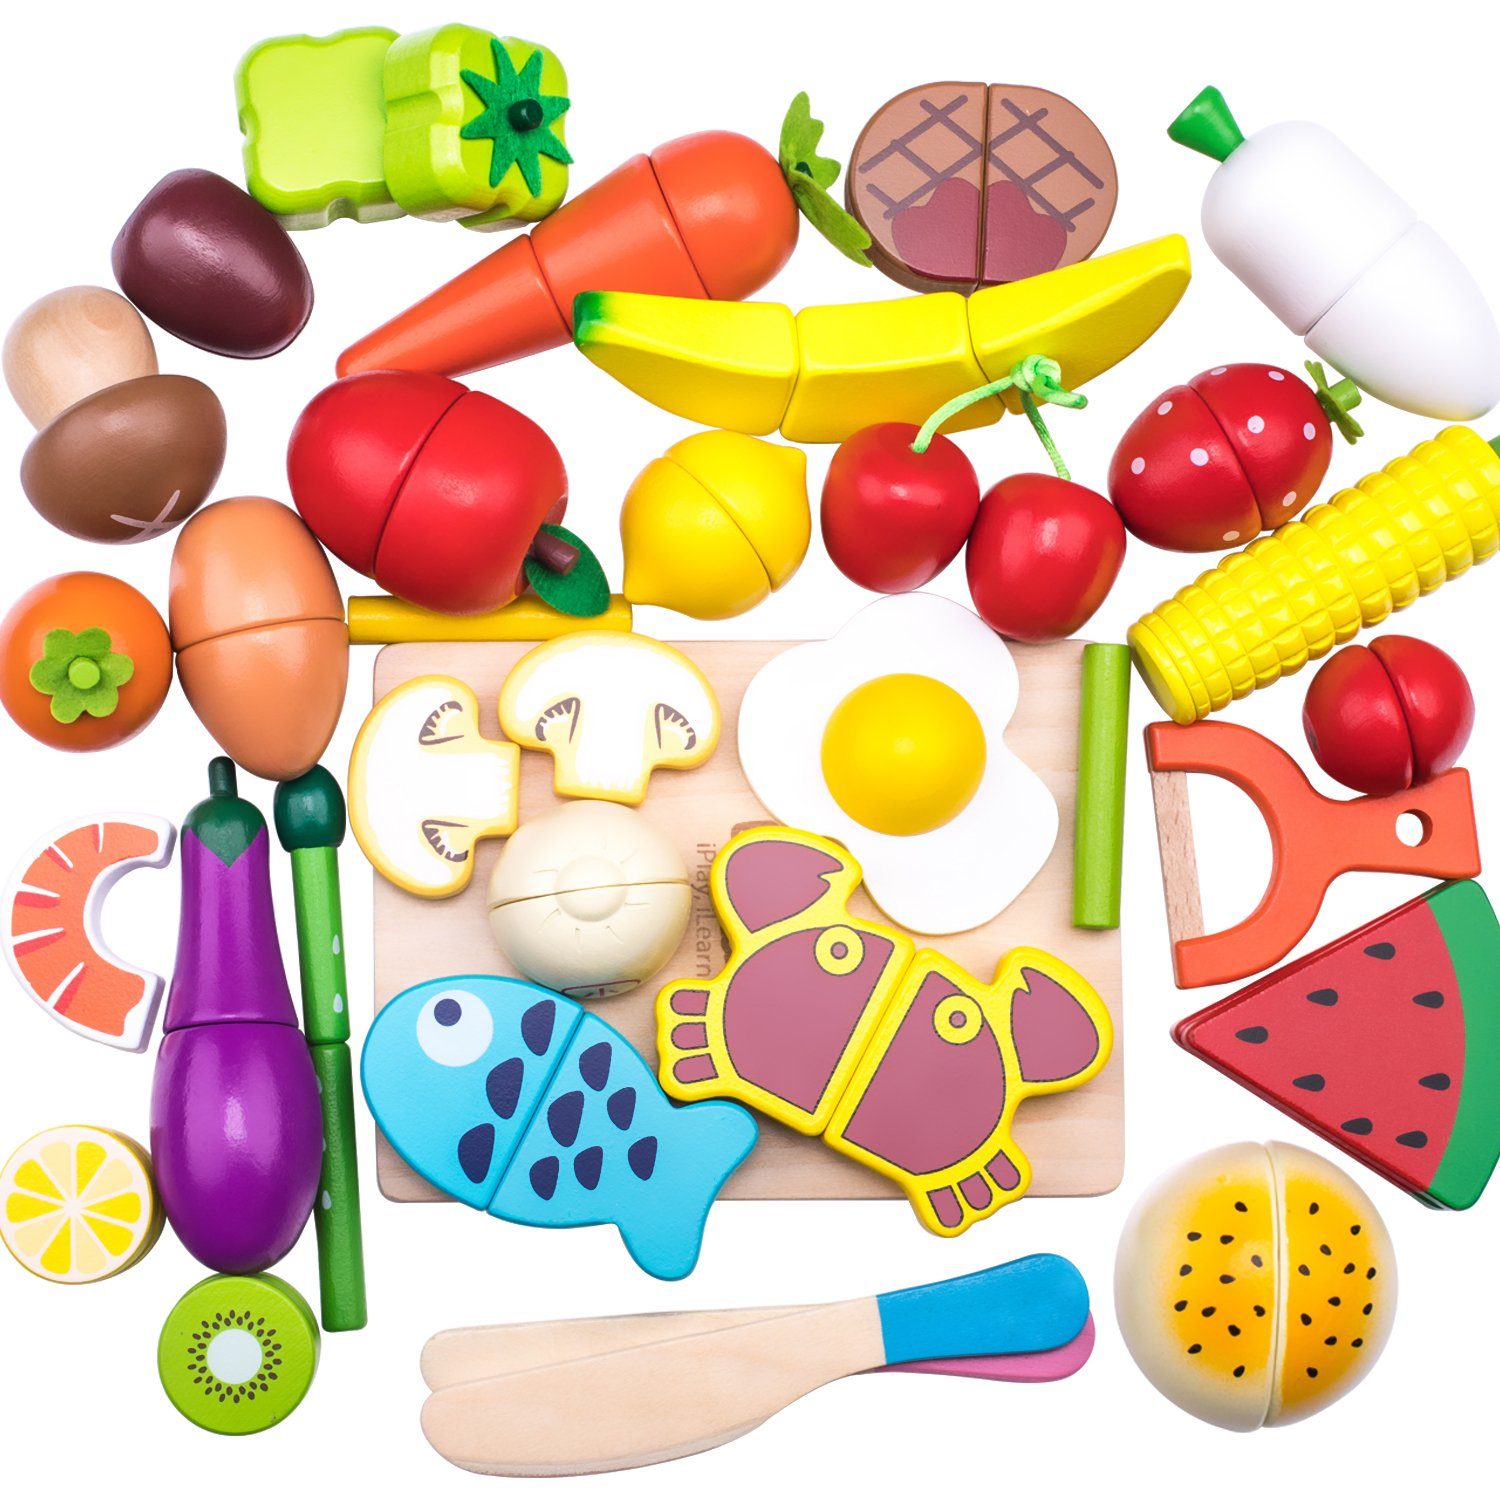 4-5 nutrition toys clipart clip art library download Wooden Cutting Cooking Food Sets, Pretend Play Kitchen Kits Toy, Magnetic  Wood Vegetables Fruits, Early Development, Learning, Birthday Gifts for  Ages ... clip art library download